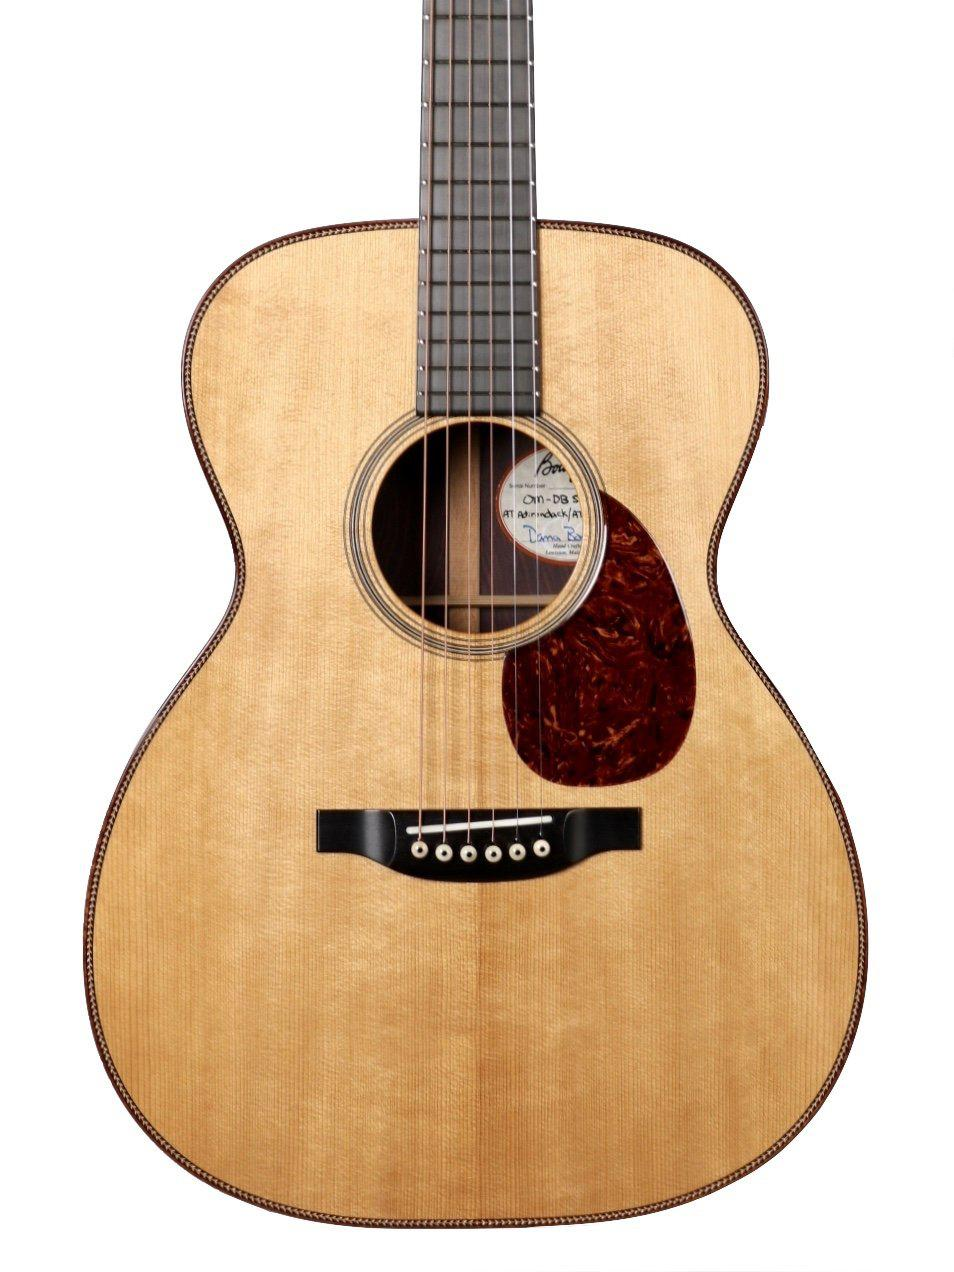 Bourgeois OM DB Signature Aged Tone Adirondack Spruce / Master Grade Indian Rosewood #8762 - Bourgeois Guitars - Heartbreaker Guitars